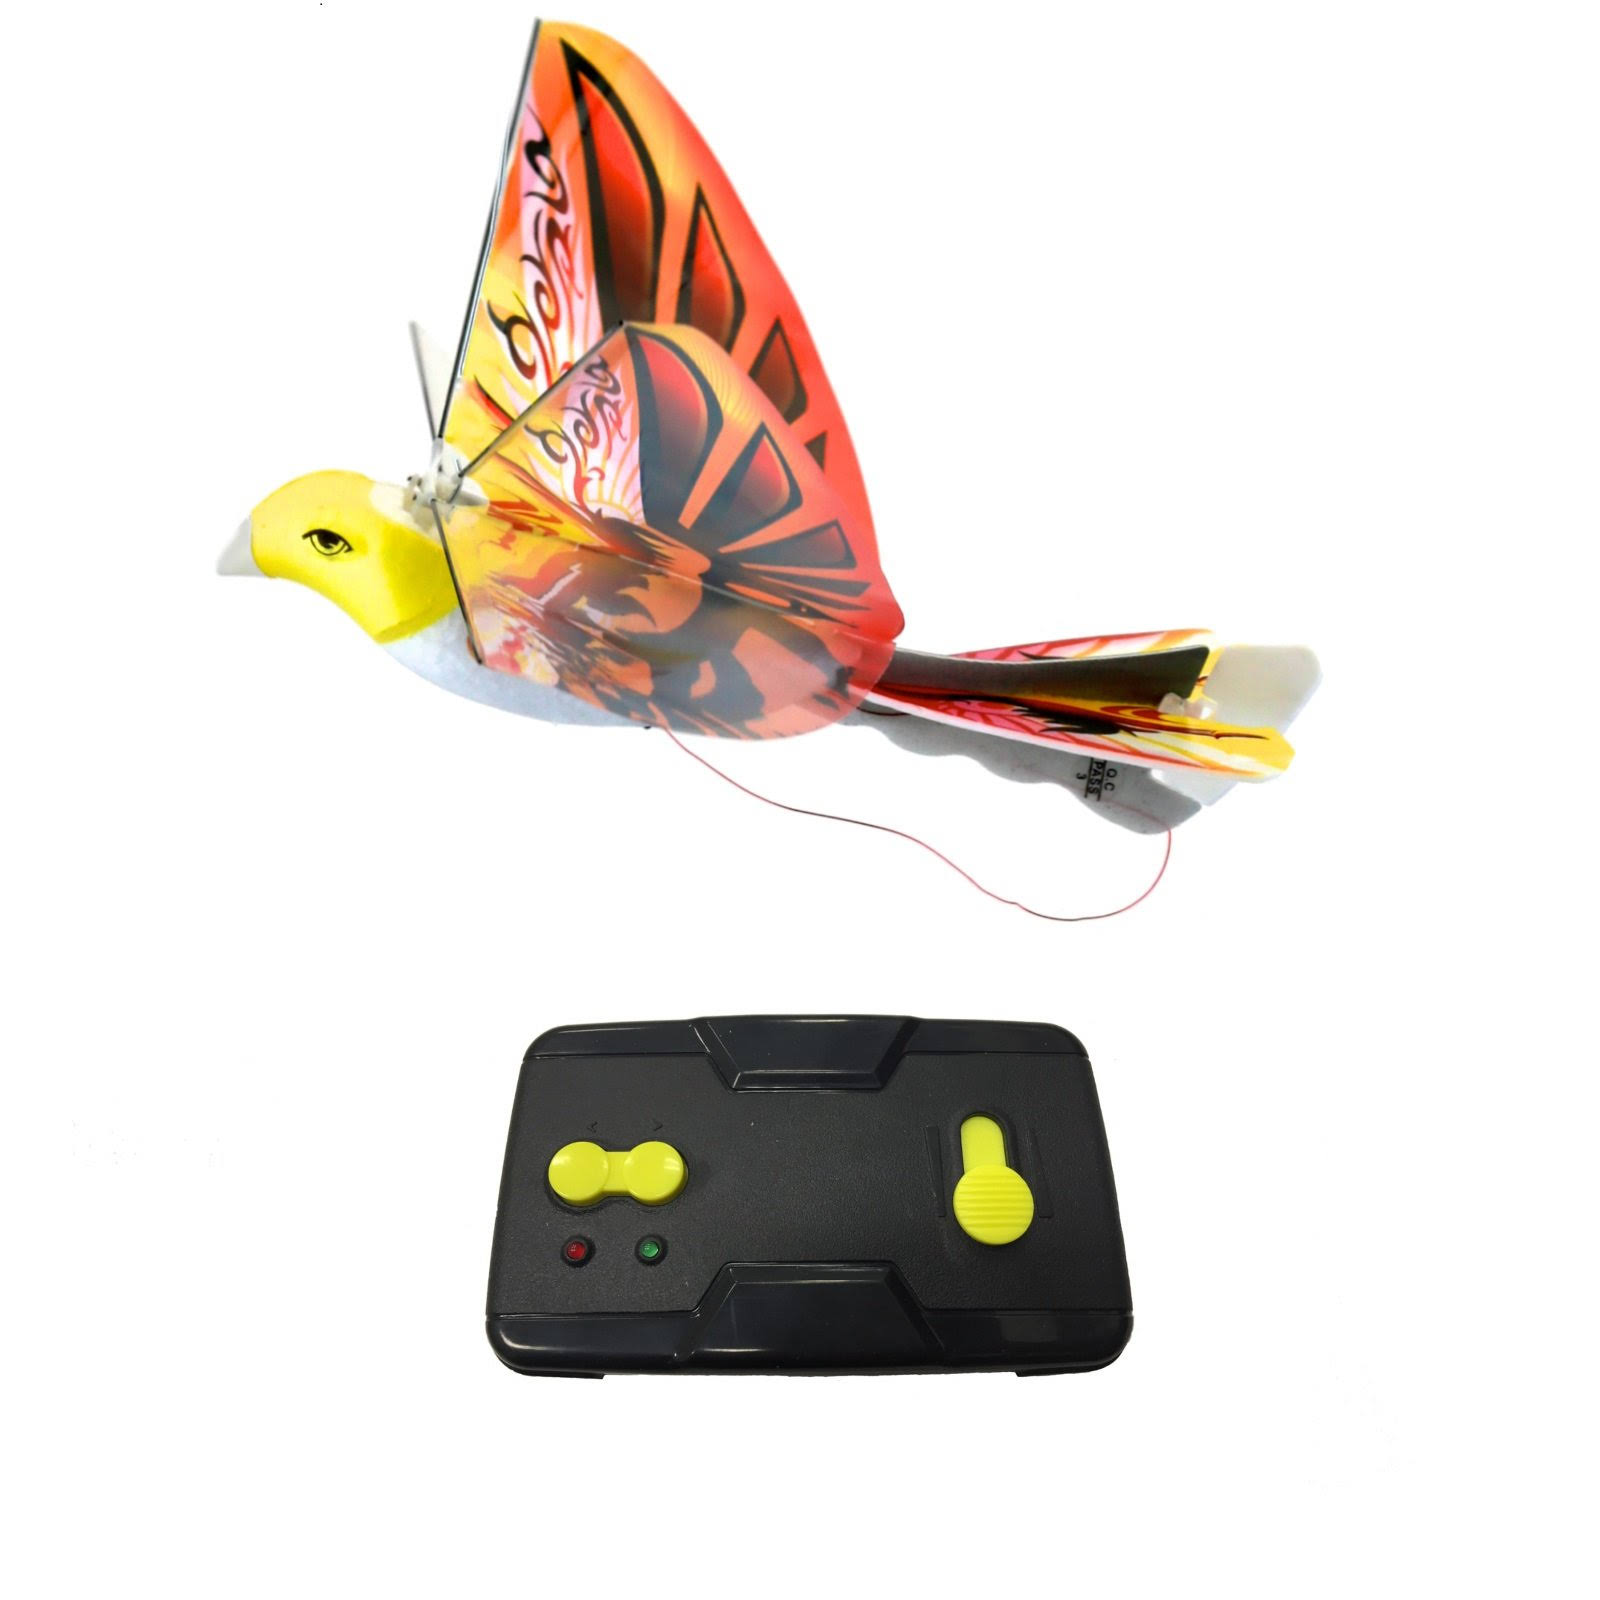 Mukikim eBird Orange x2 Channel RC Flying Bird